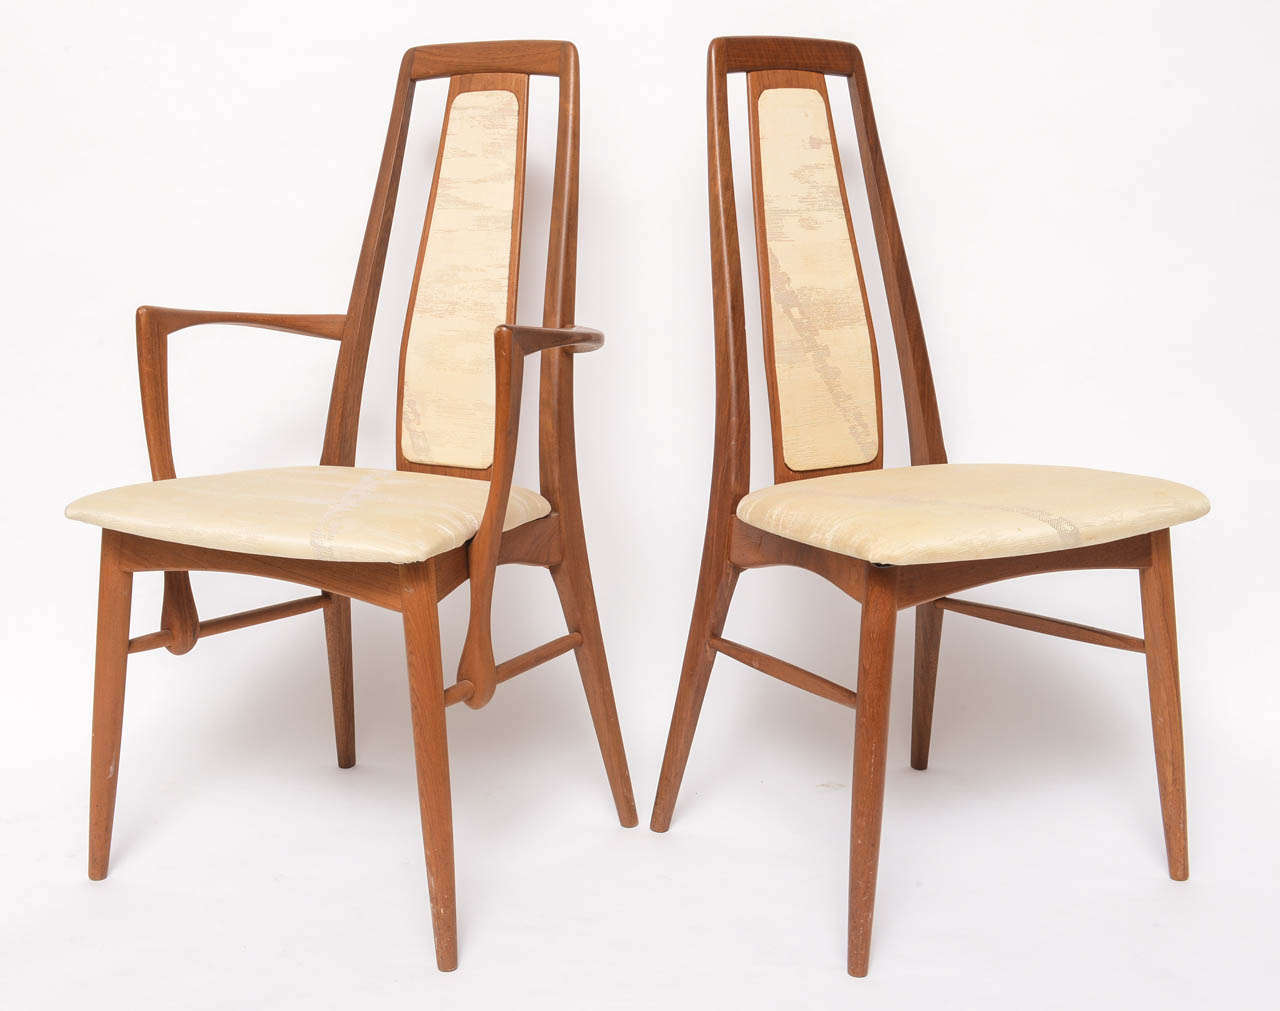 Mcm Chair Koefoeds Danish Teak Mcm Dining Table With Eight Chairs At